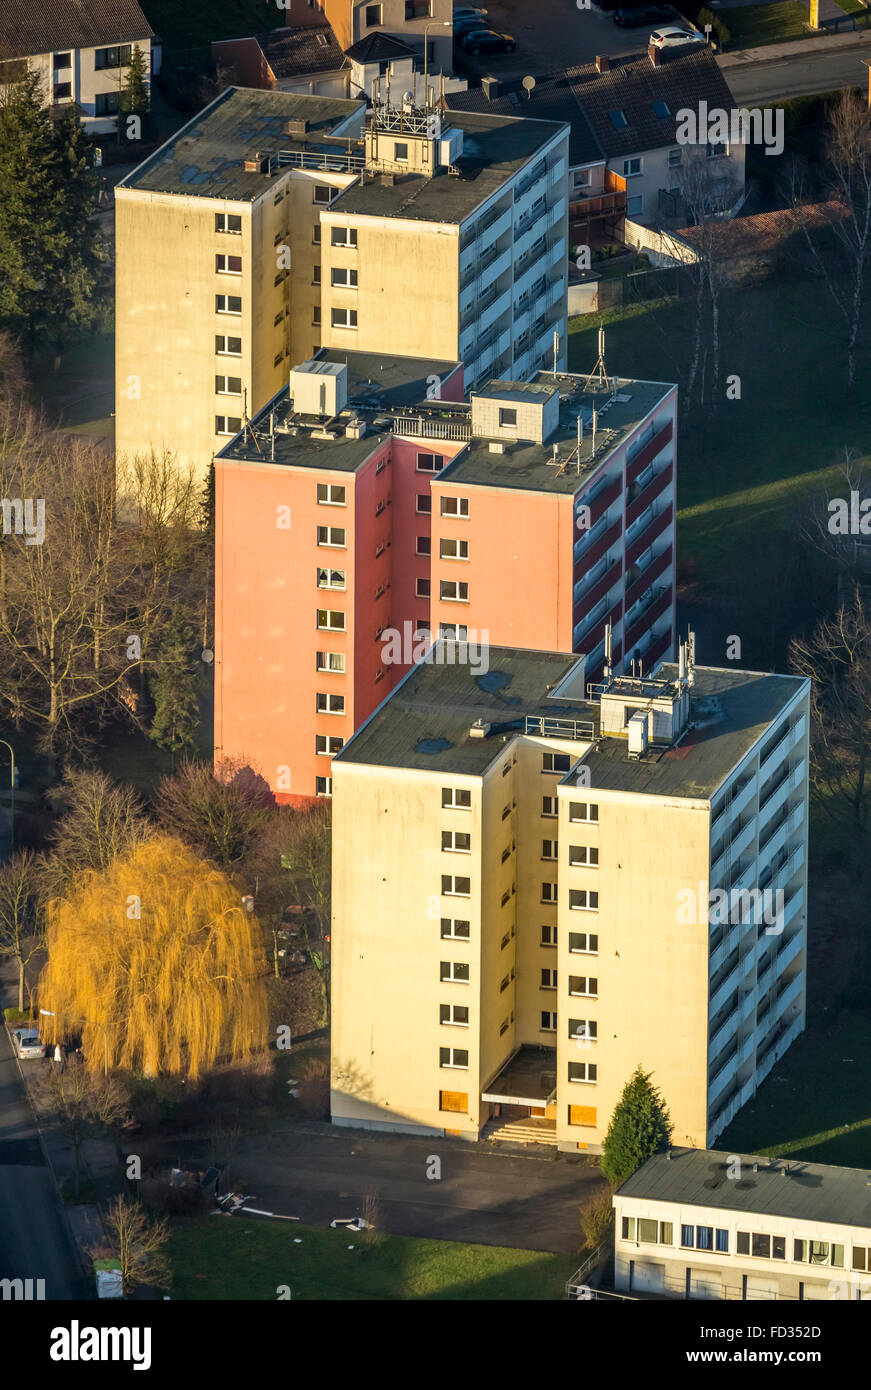 Aerial view, junk property, social hot spot, Herringen skyscrapers Waldenburgerstrasse, Hamm, Ruhr area, North Rhine - Stock Image